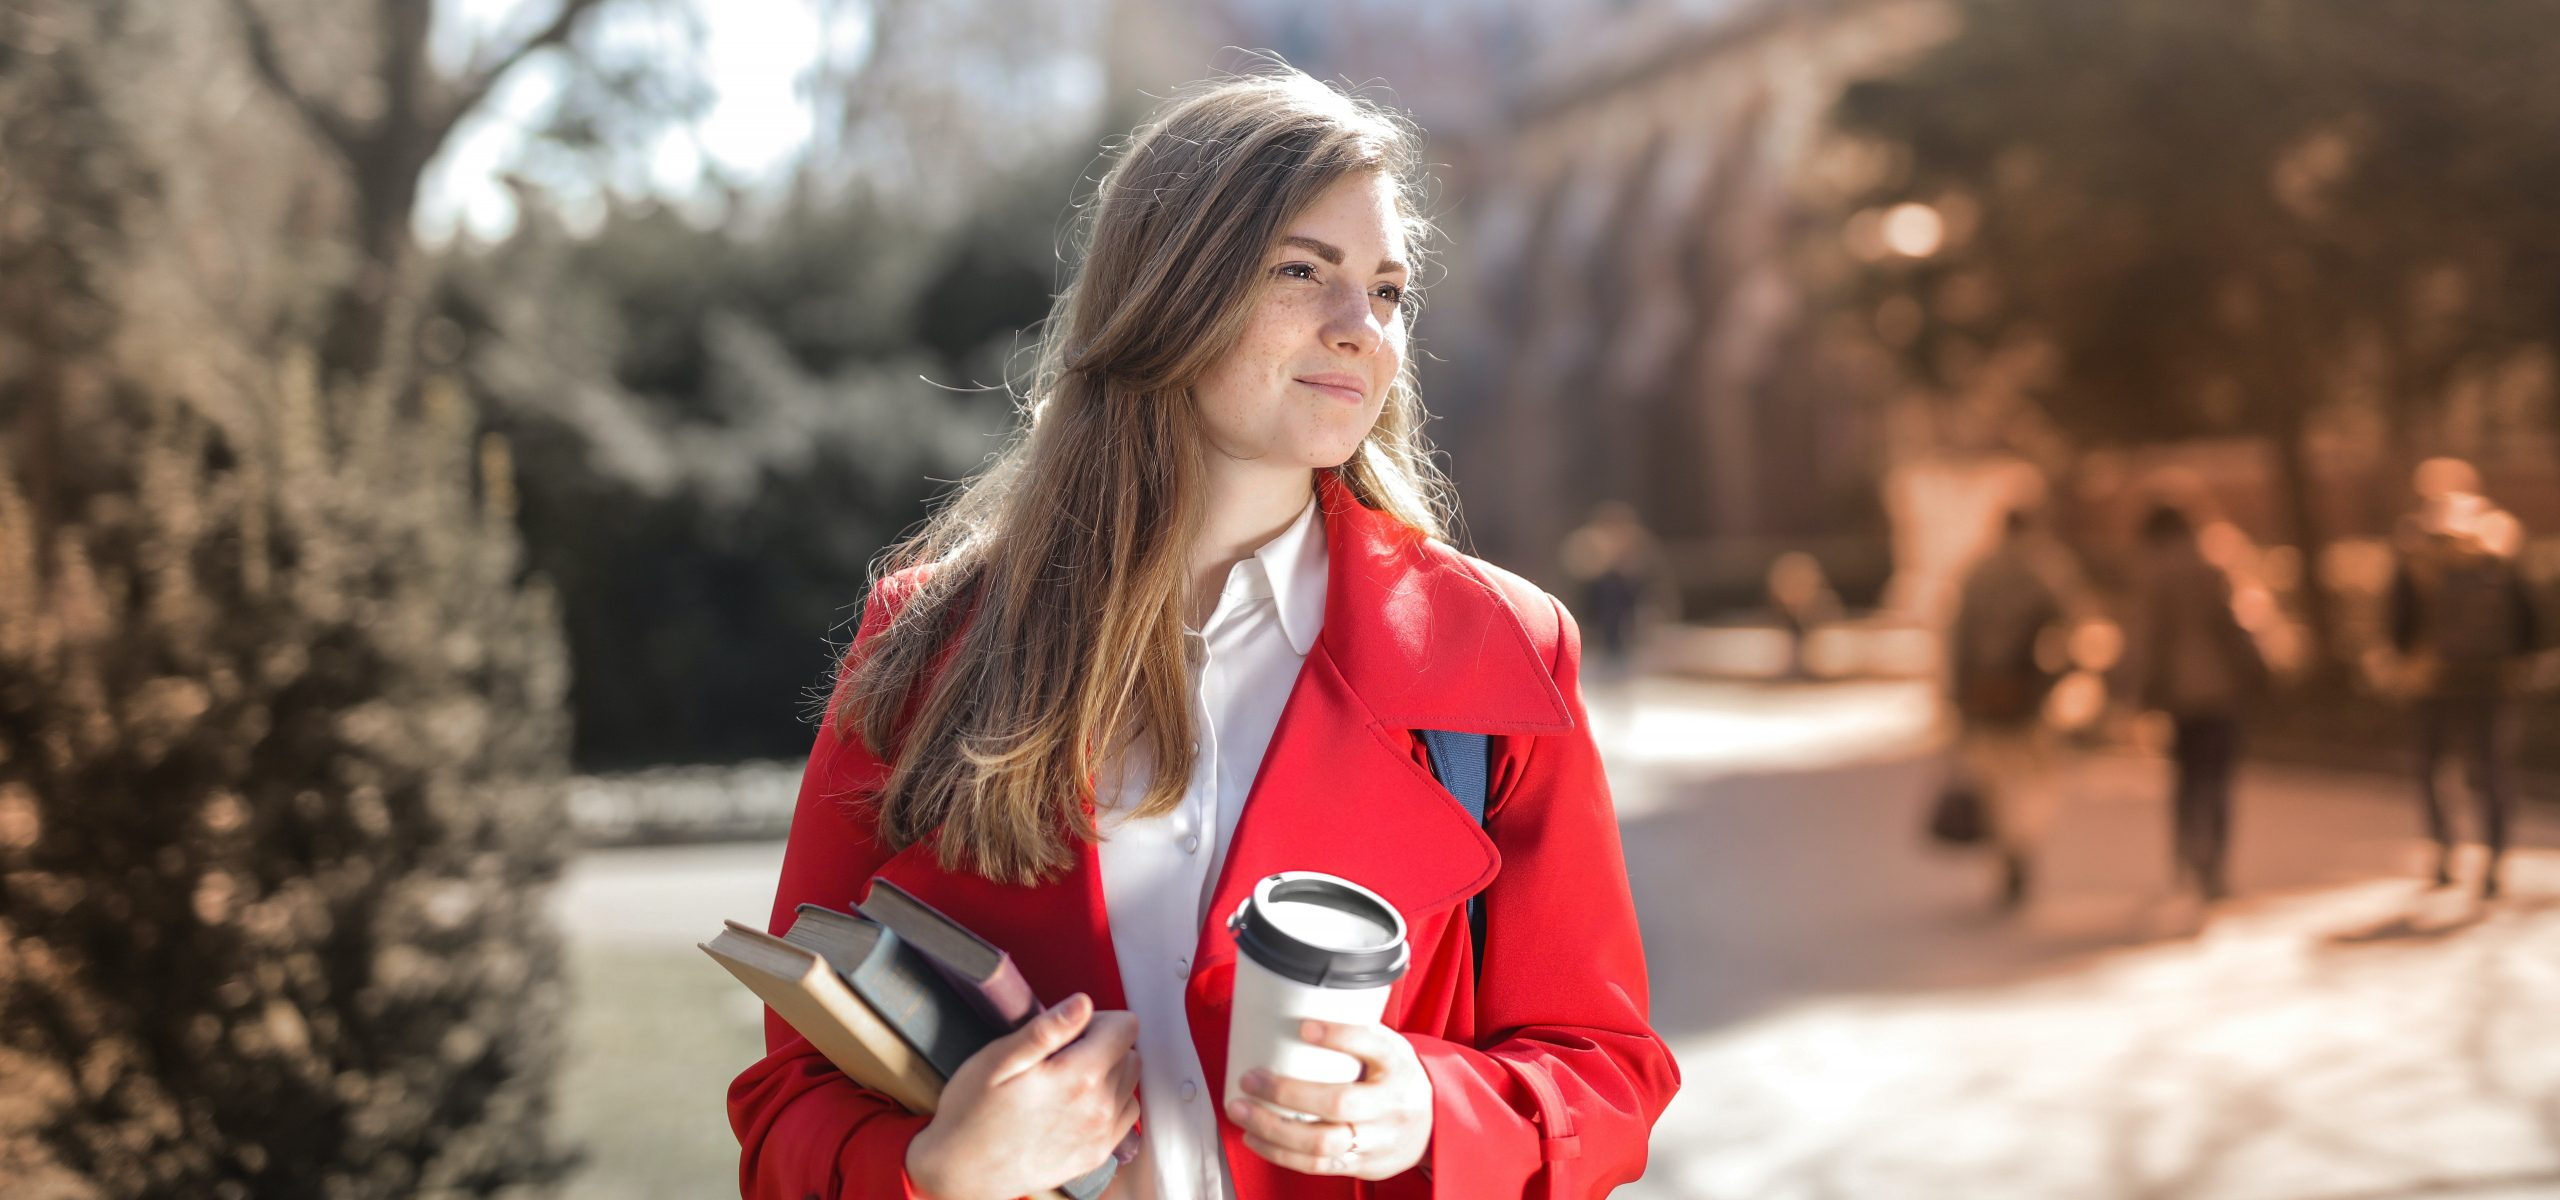 Woman wearing red coat, holding book and coffee as she walsk through university grounds